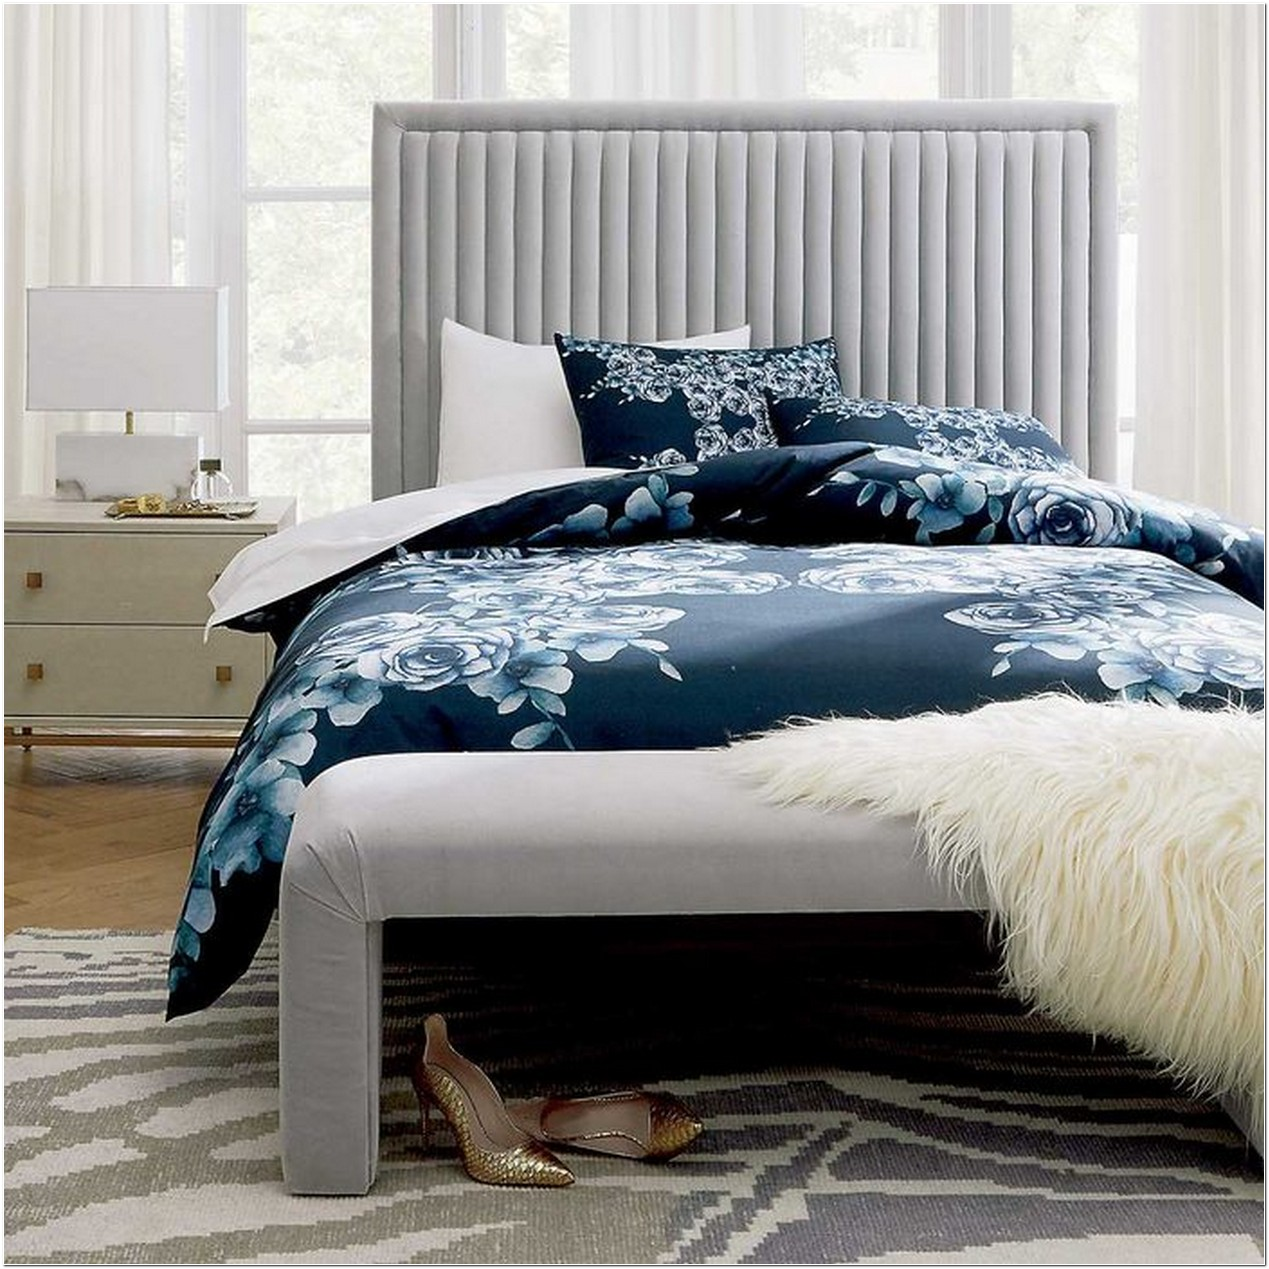 What Ideas Do You Need For A Luxury Bedroom 1